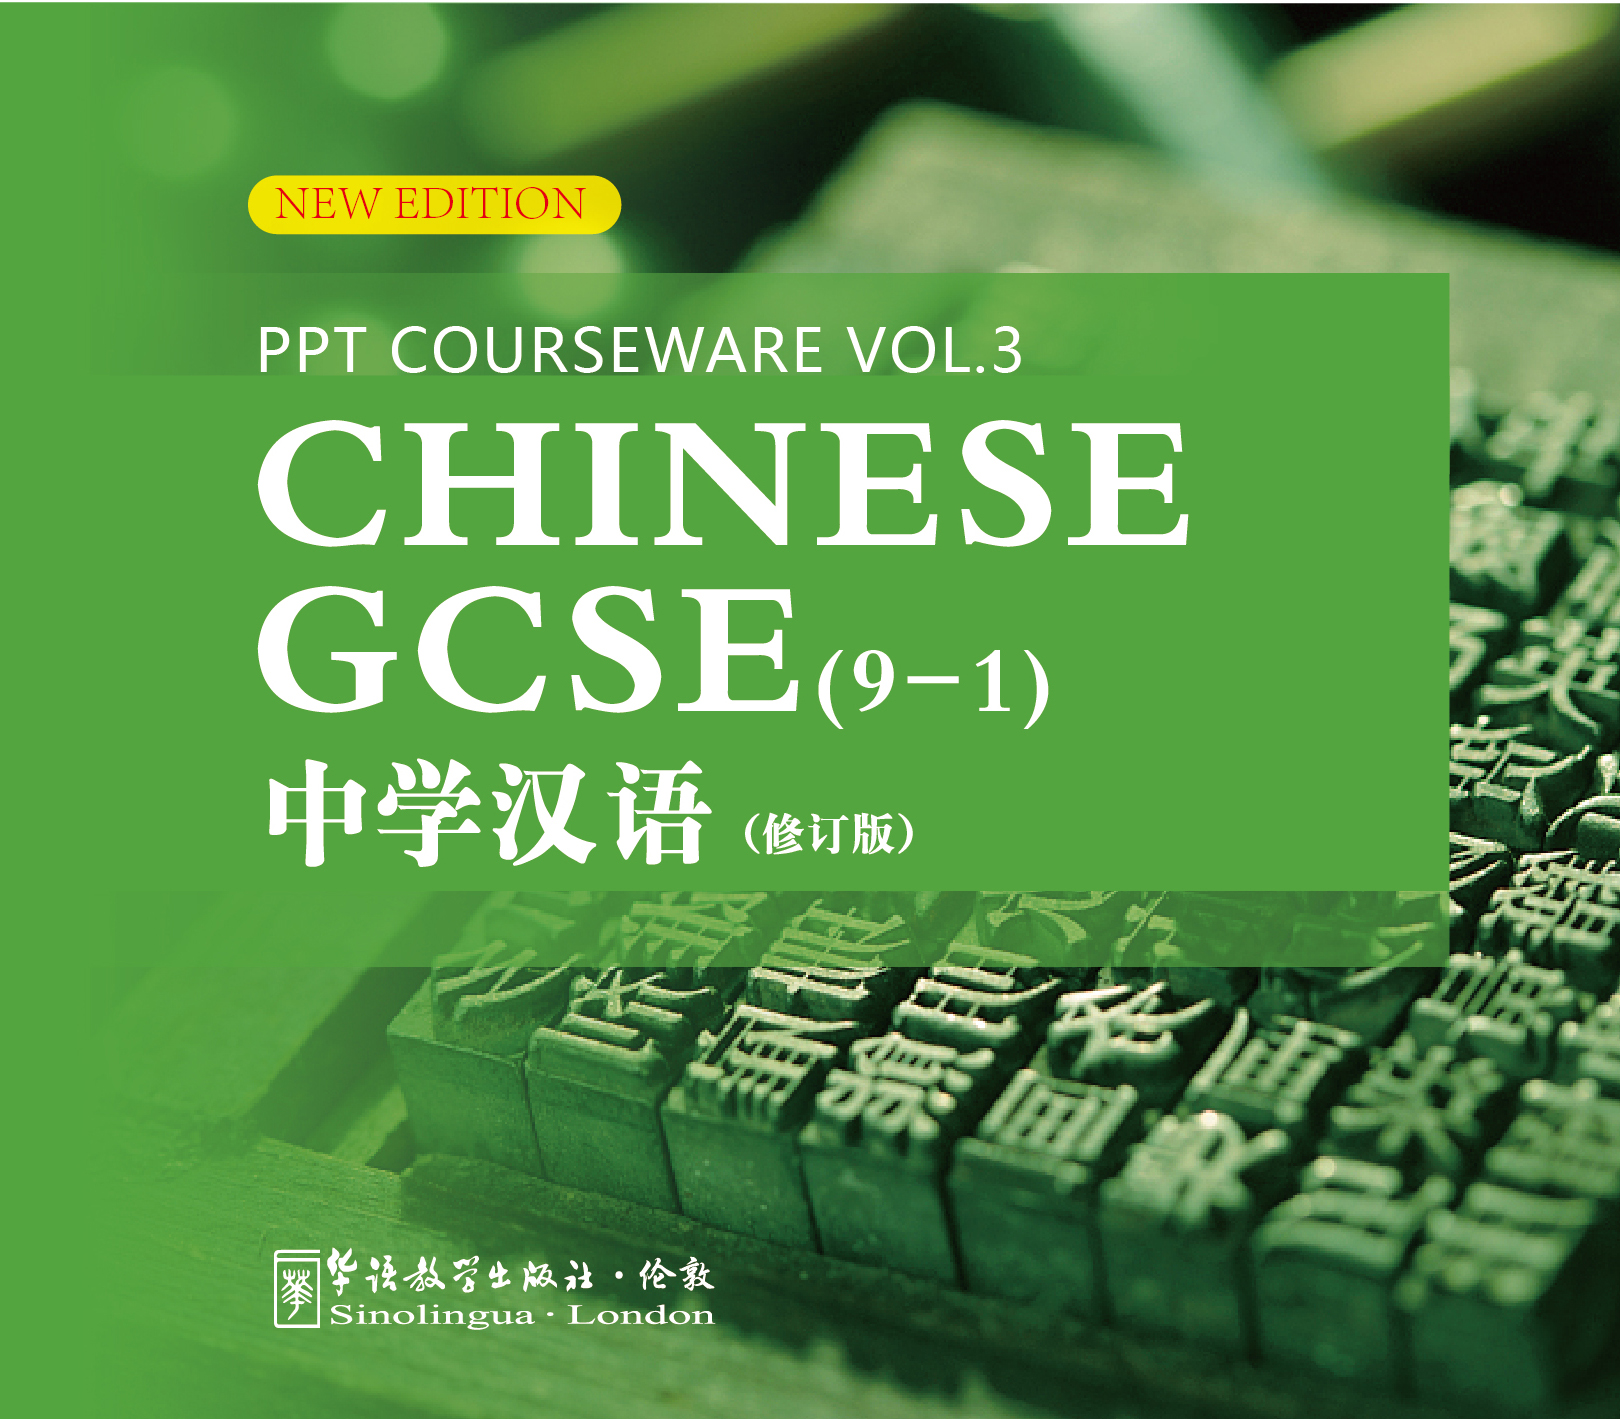 CHINESE GCSE (9-1) PPT Courseware vol.3